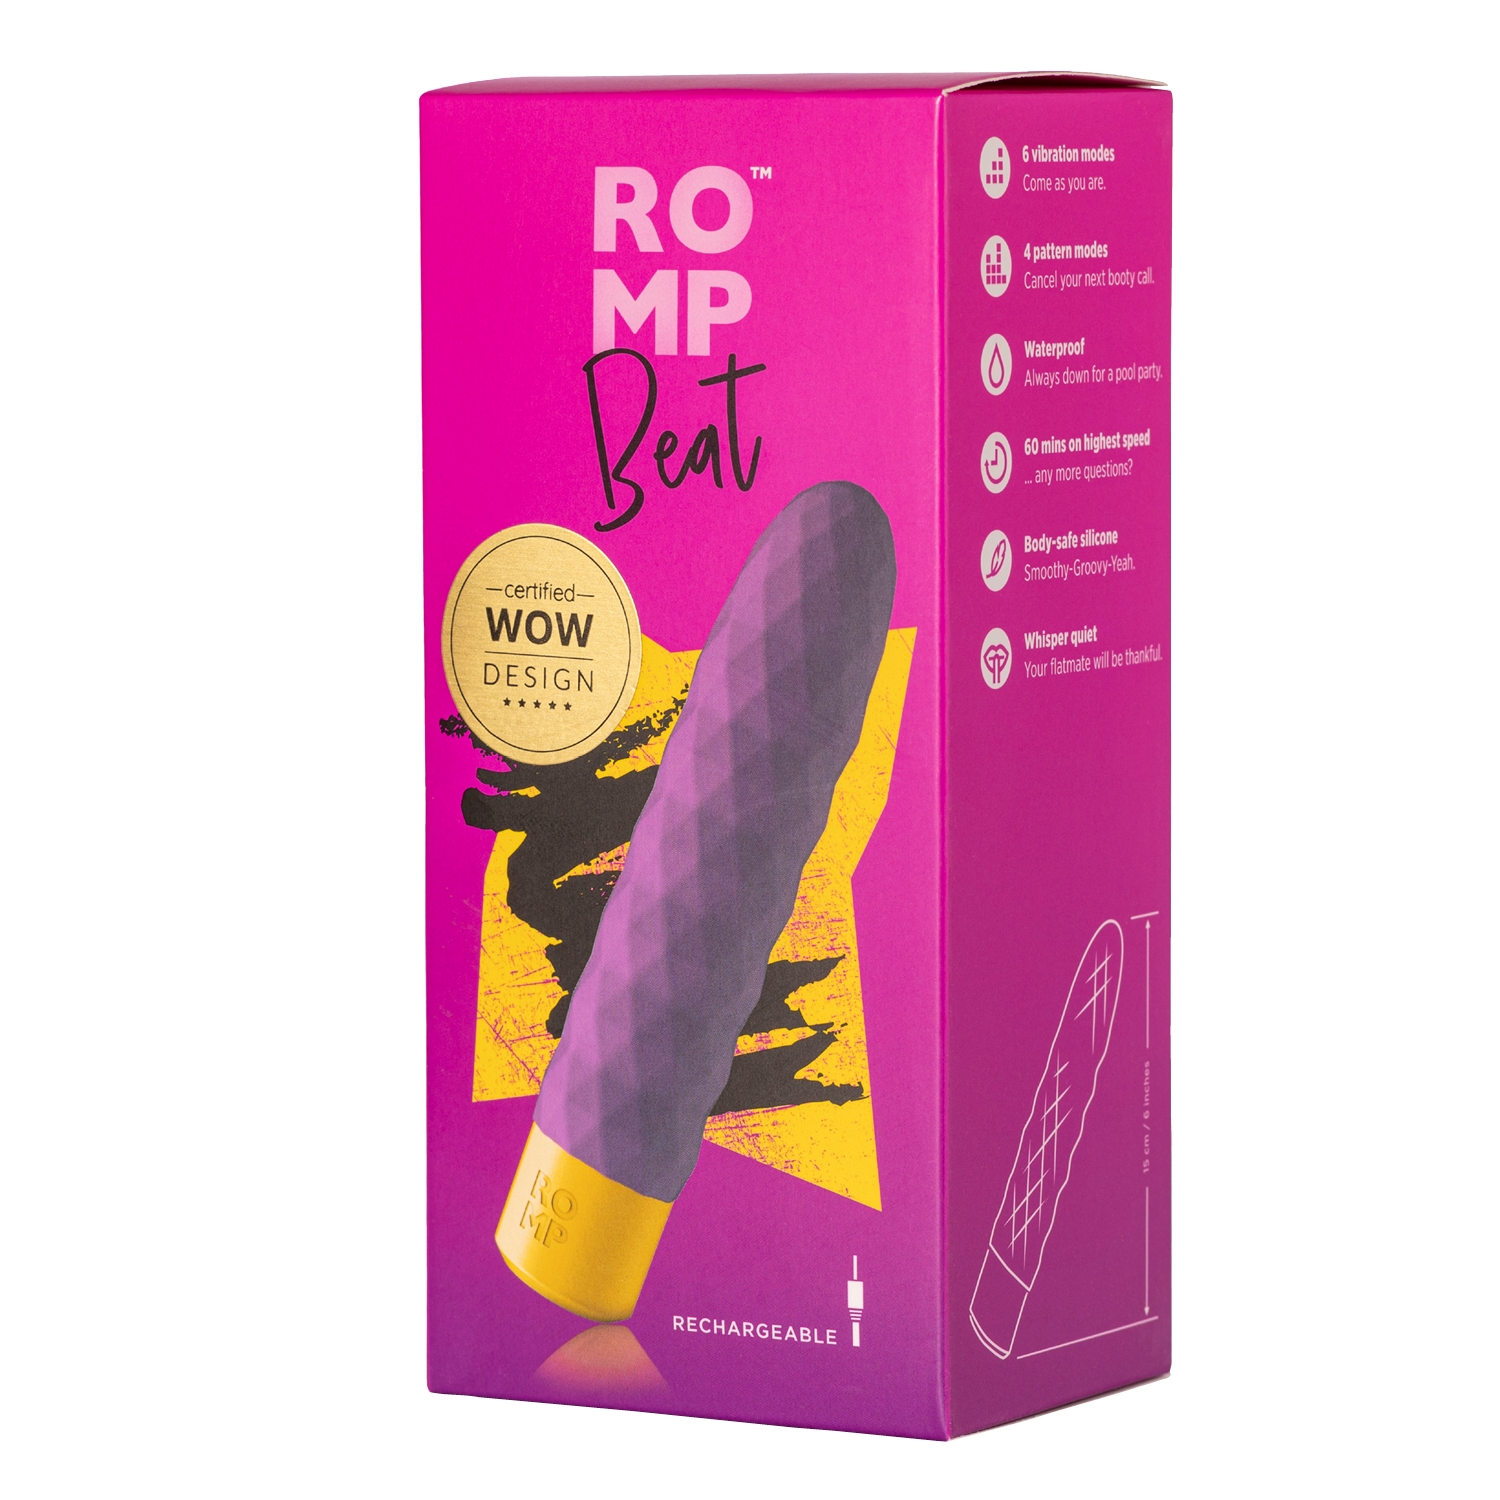 R2000 Romp Beat  NO FURTHER DISCOUNTS APPLY